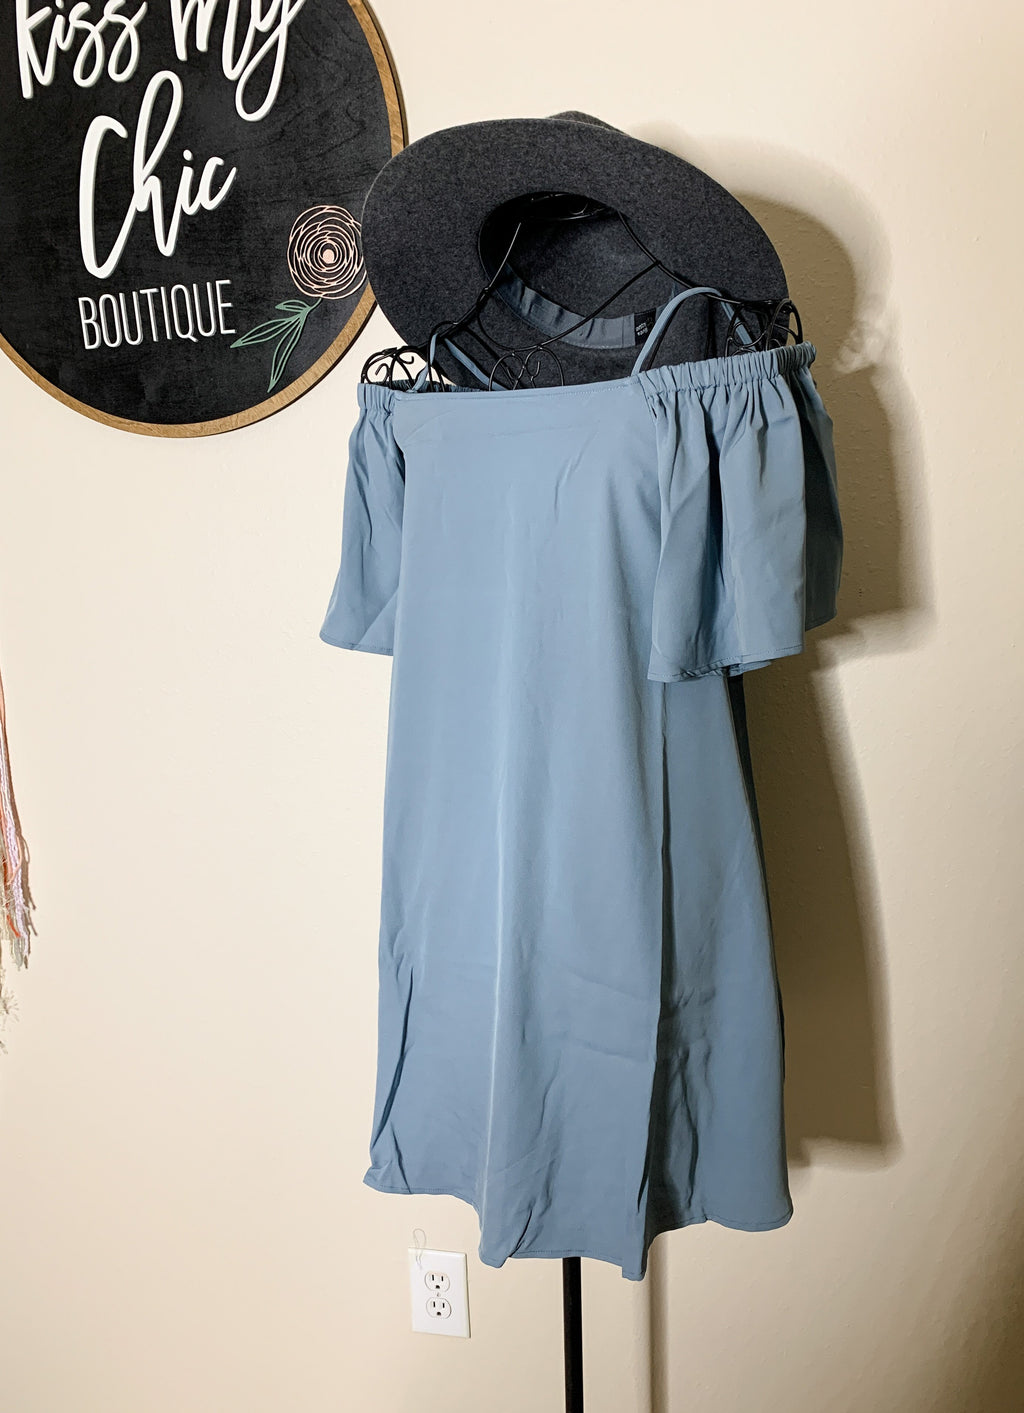 Dusty Blue Off the Shoulder Dress - Kiss My Chic Boutique